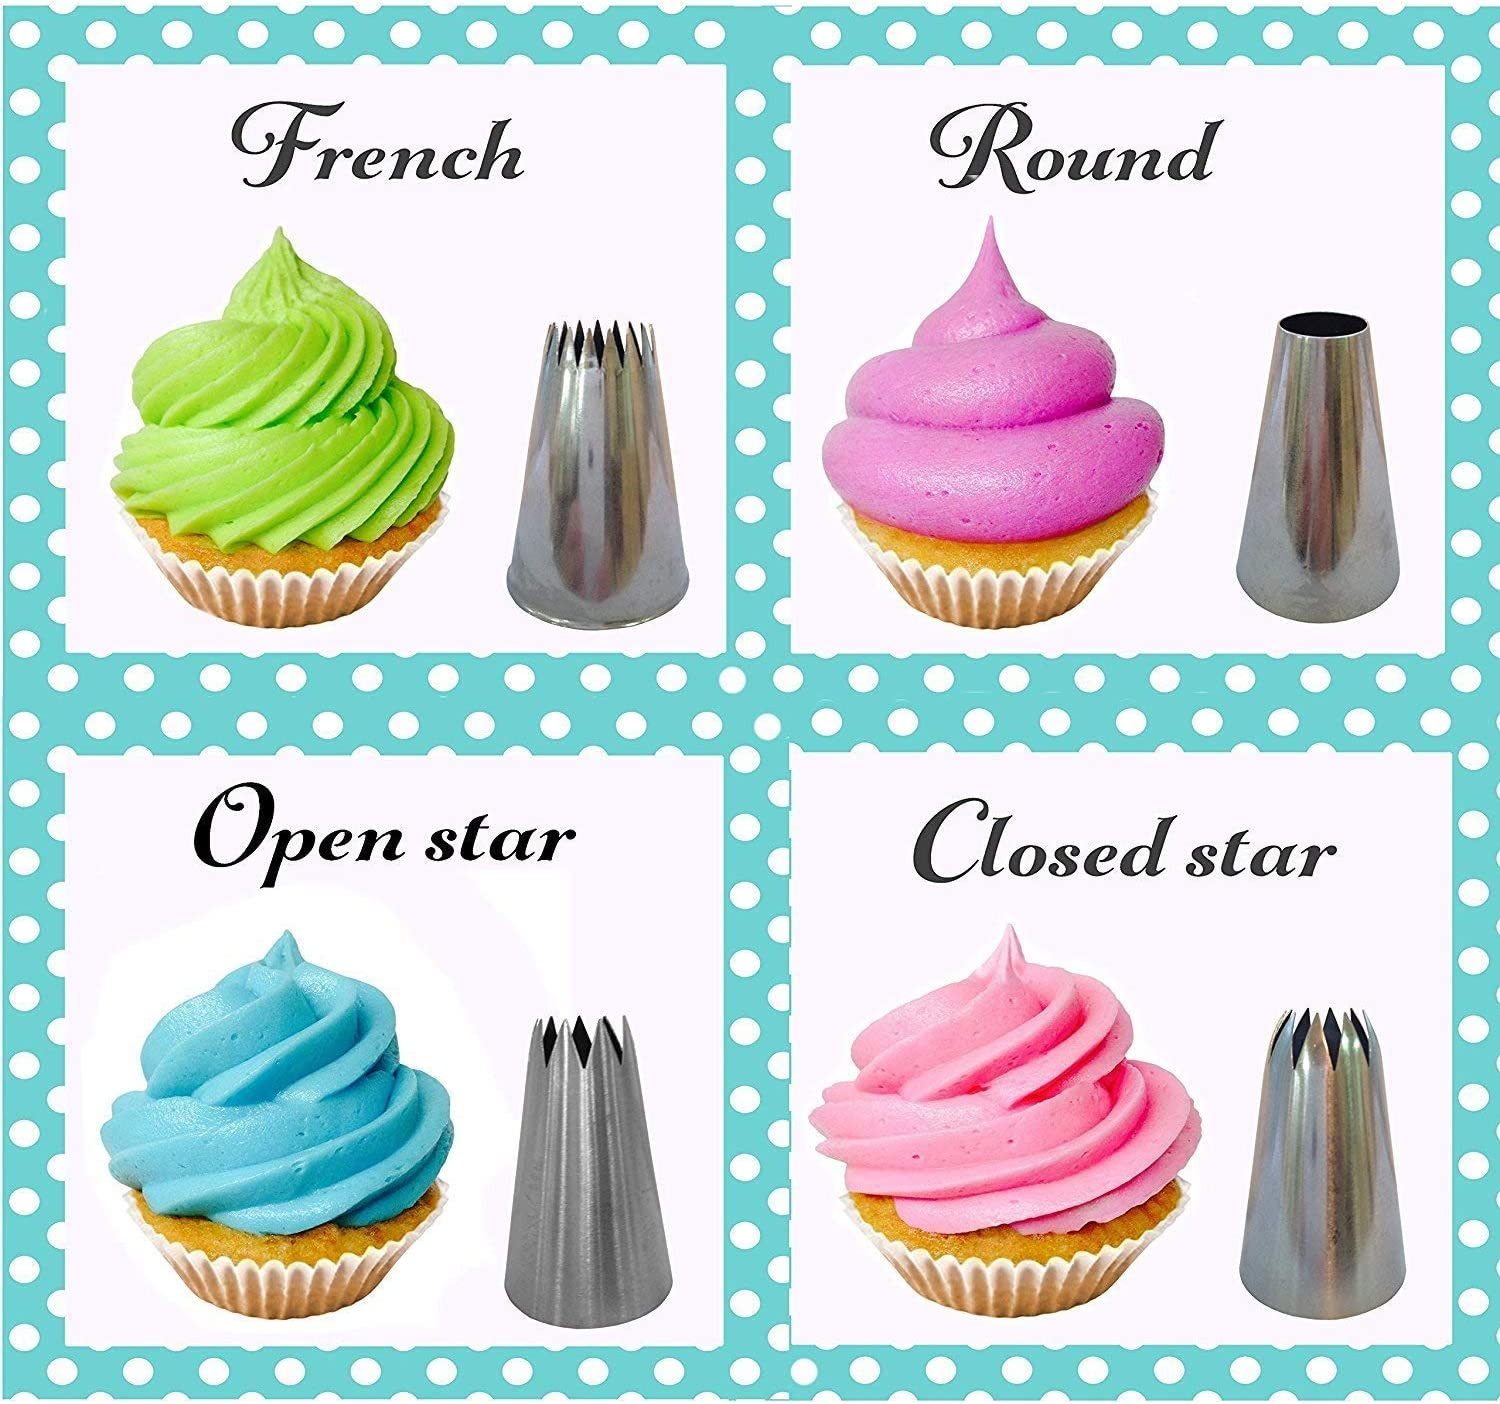 NiceMeet 4 Pcs Large Star Piping Nozzle Tips Set Ideal Big Stainless Steel Icing Nozzle DIY Tools for Cupcakes Pastry Cake Decorating #2